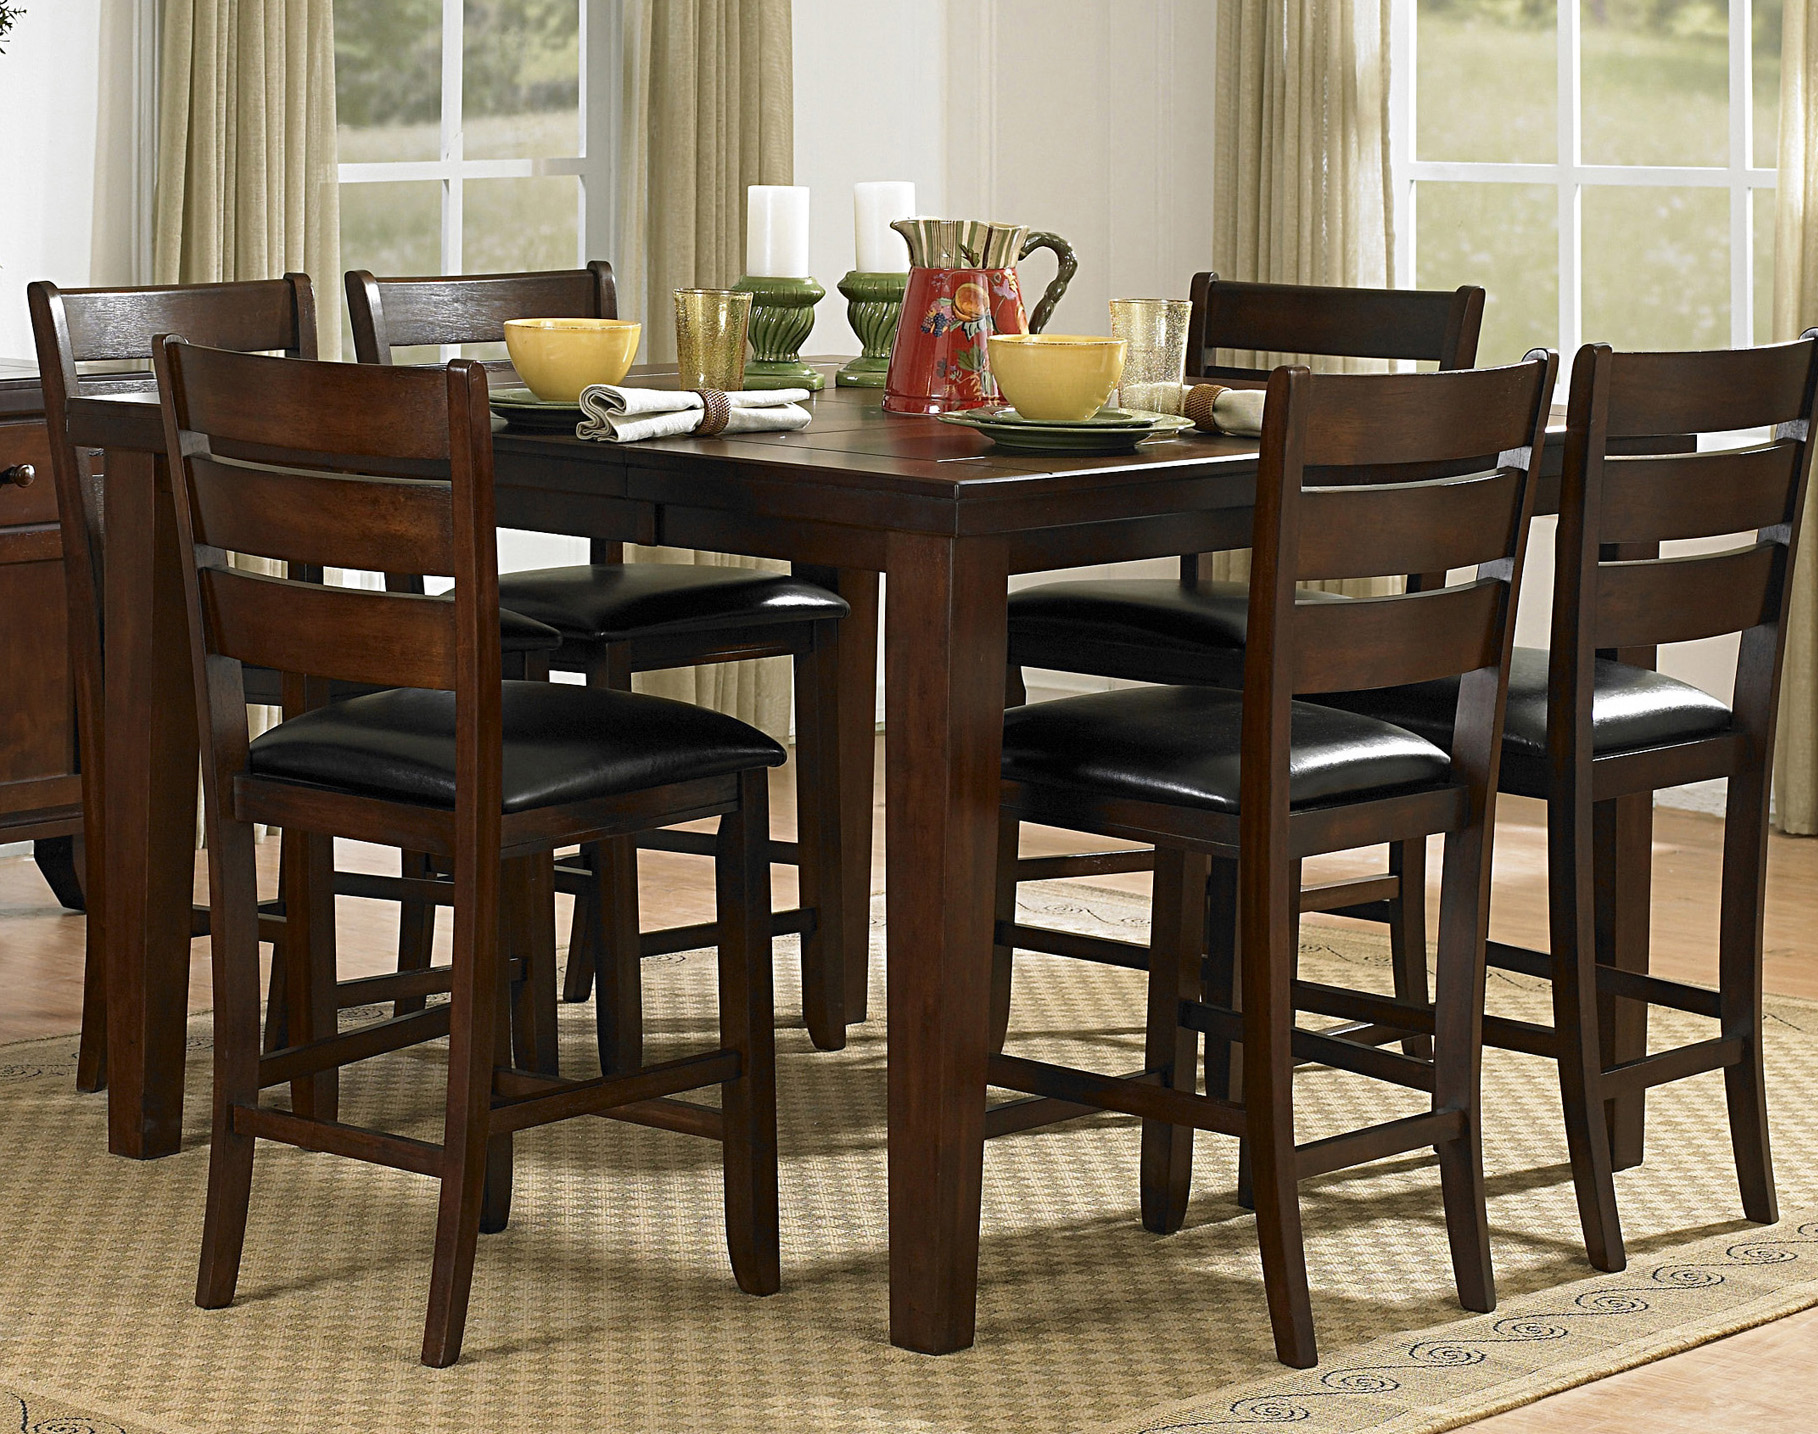 Homelegance ameillia counter height dining table dallas tx for Dining room table height